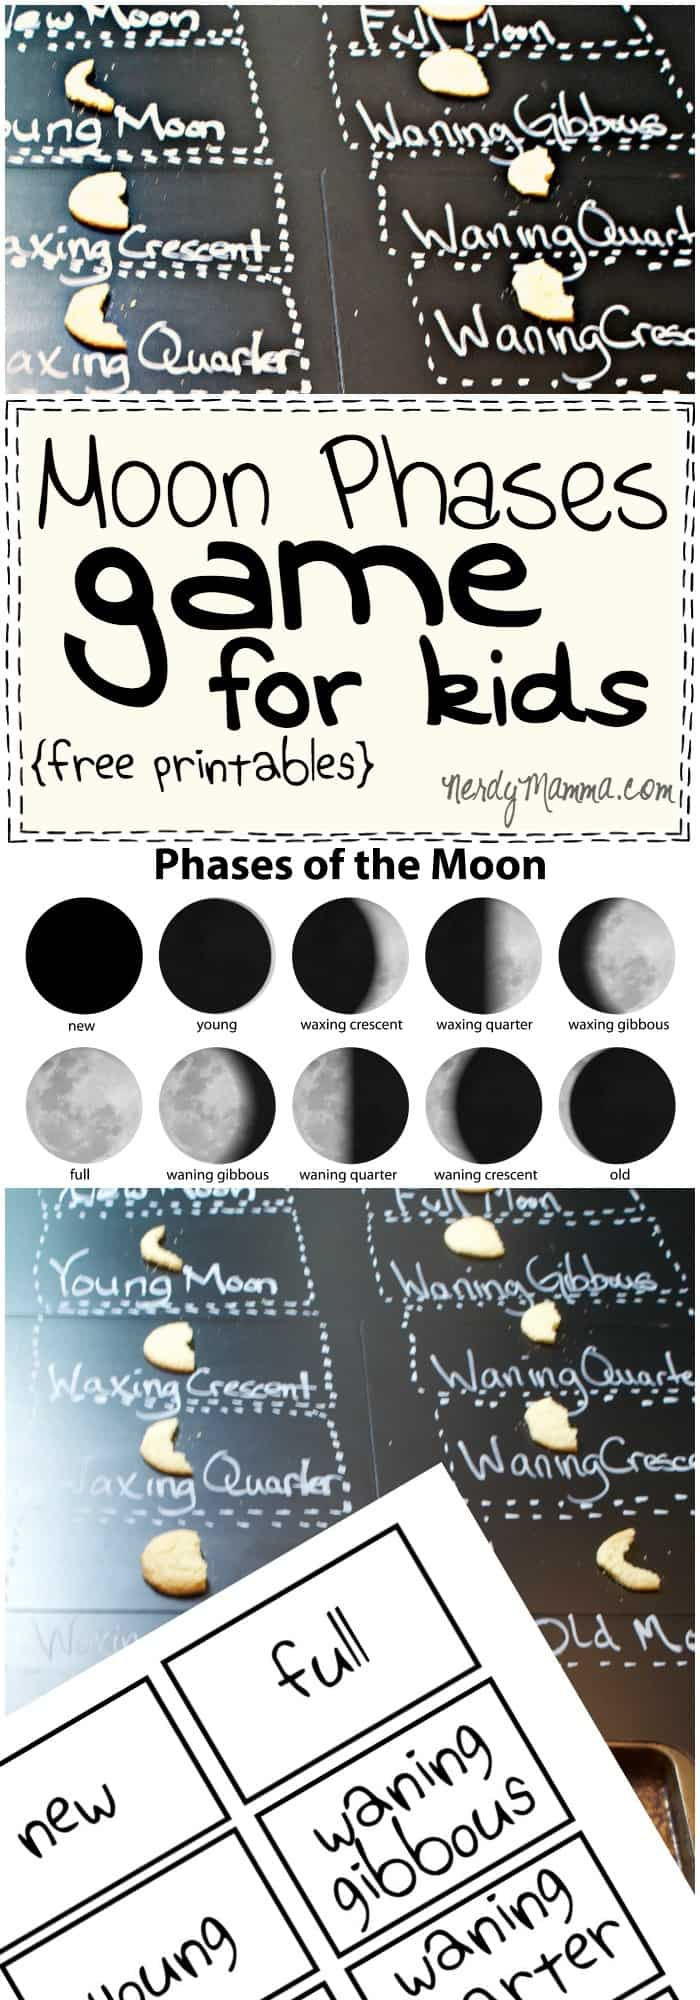 This moon phases game for kids is so easy--and FUN! What a great way to teach kids about the moon...LOL!